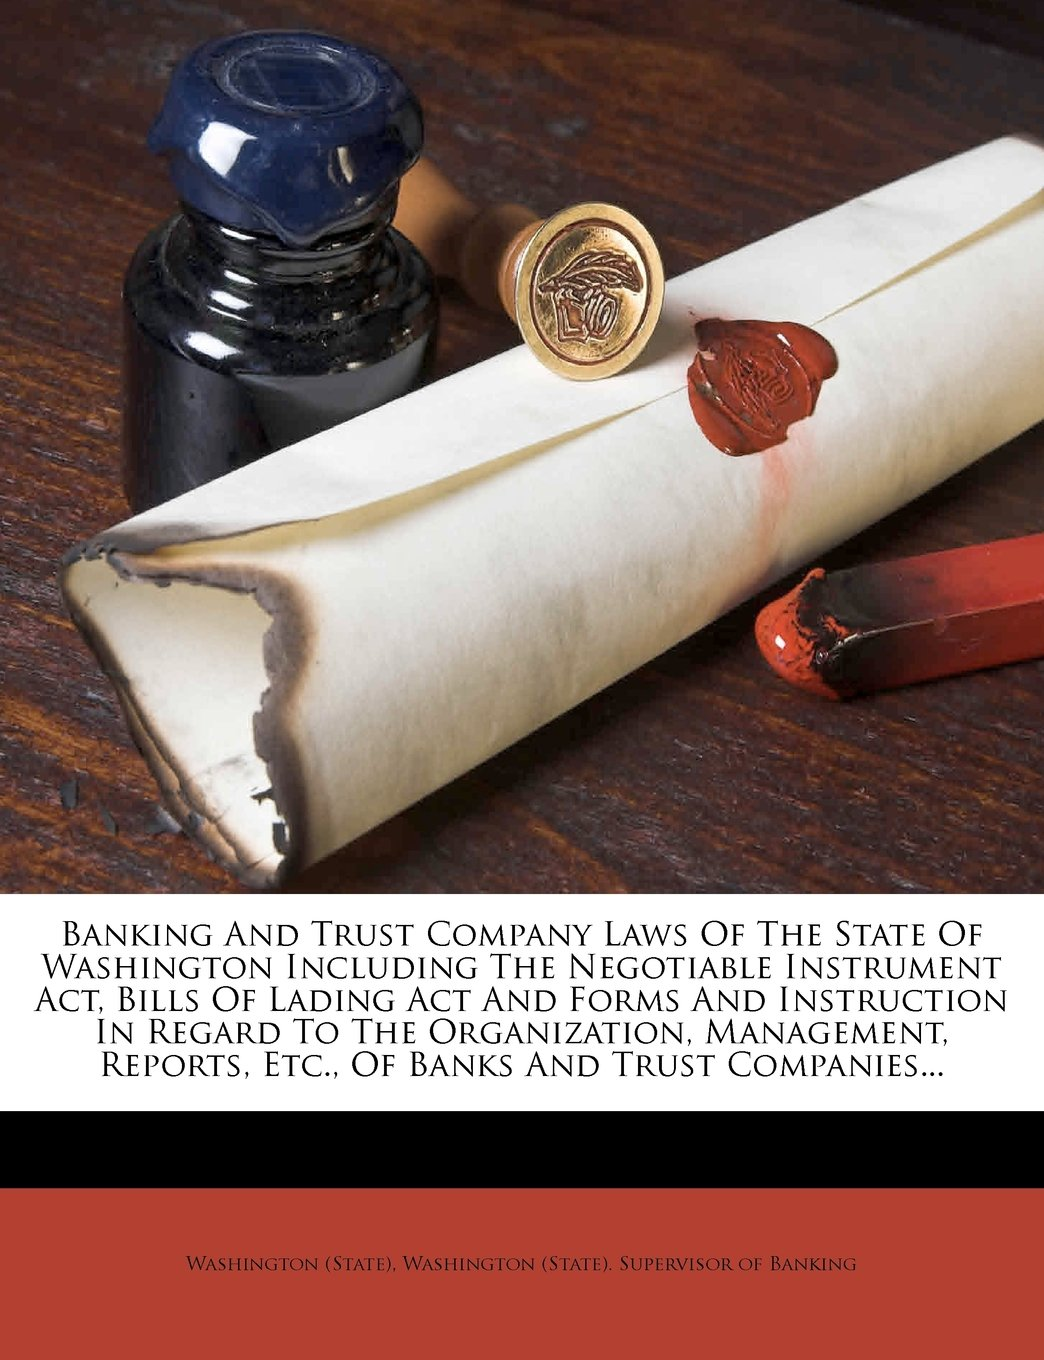 Download Banking And Trust Company Laws Of The State Of Washington Including The Negotiable Instrument Act, Bills Of Lading Act And Forms And Instruction In ... Etc., Of Banks And Trust Companies... pdf